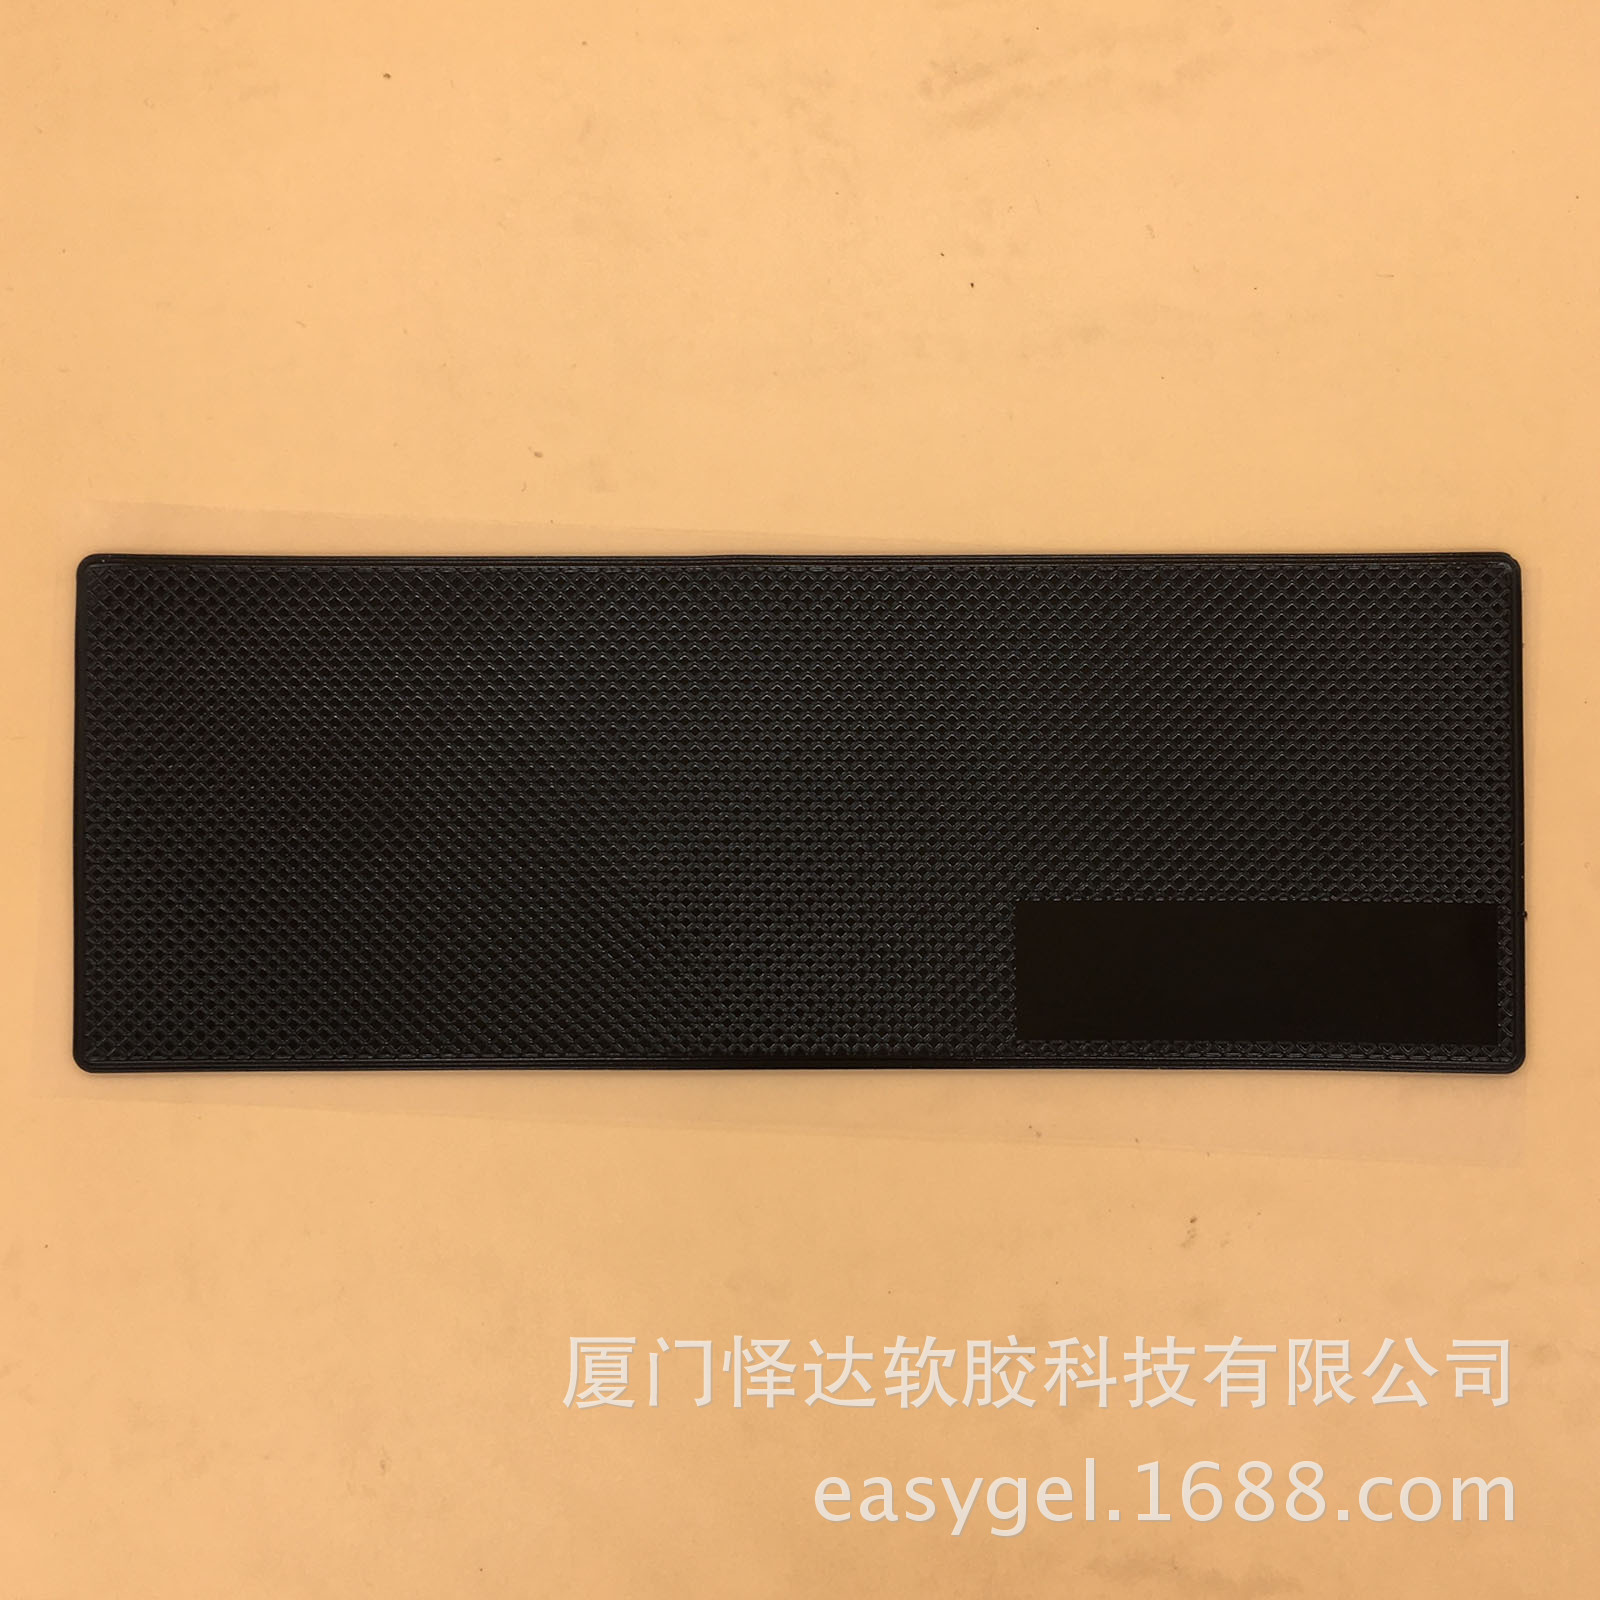 Convenient Solid-Colored Mat with Anti-Slip Feature for Car Interiors